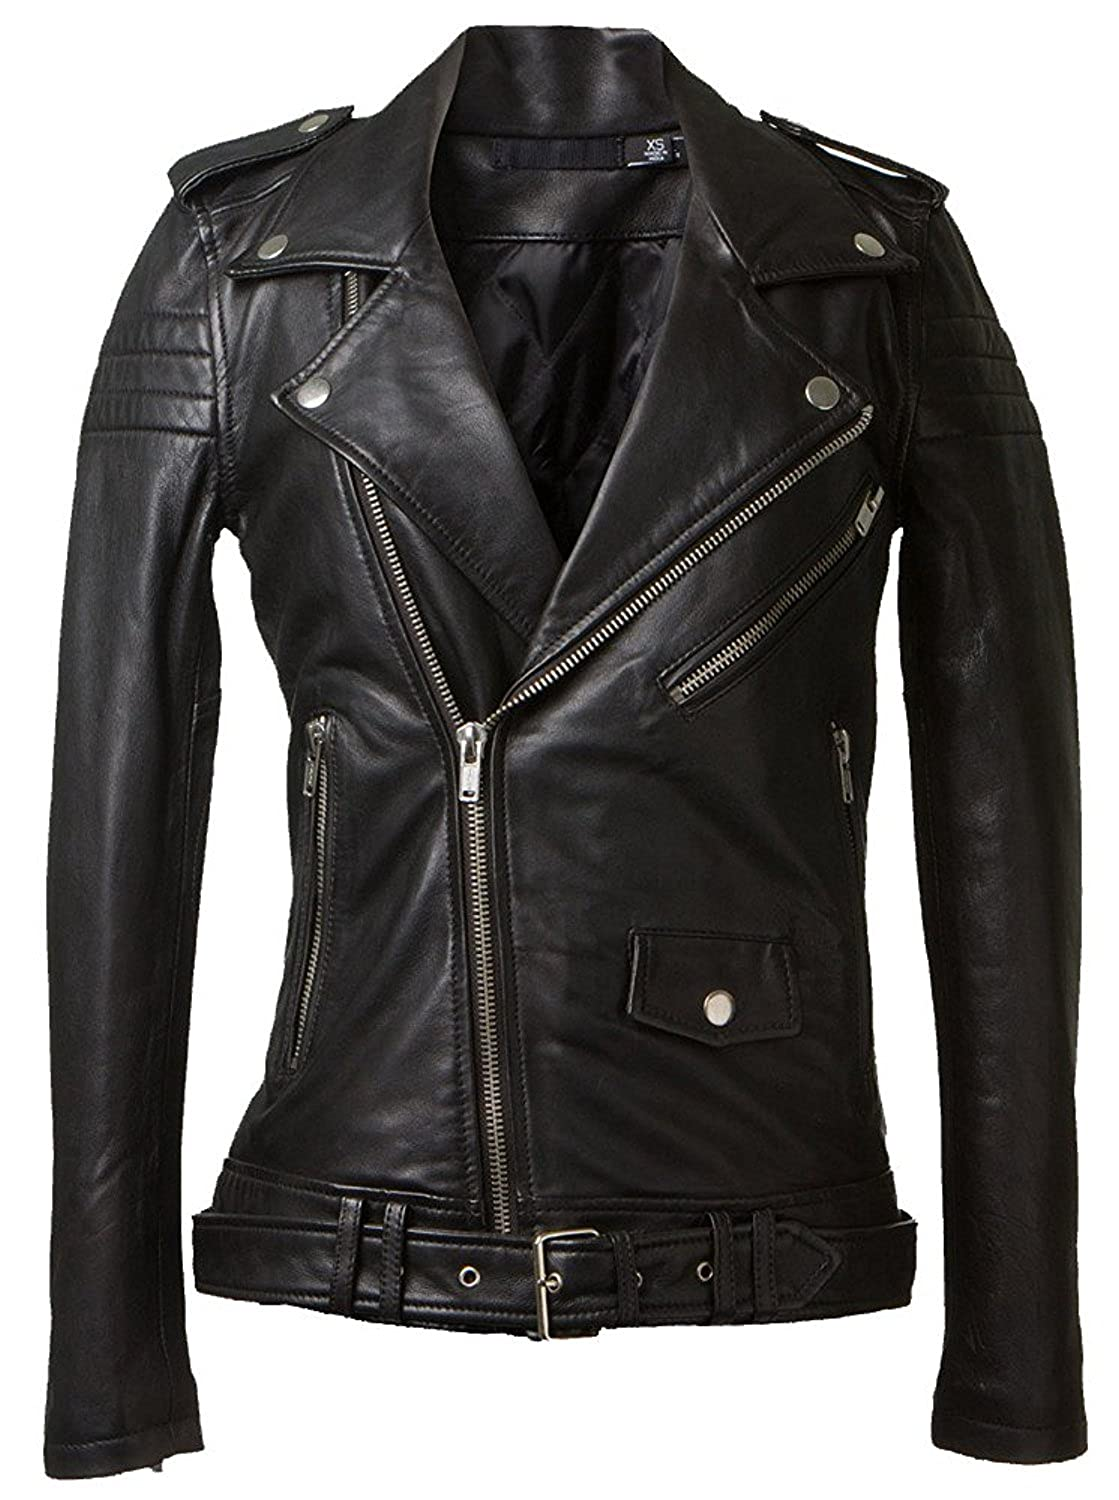 Cosplay Genuine Leather Jacket for Women - Lambskin Leather